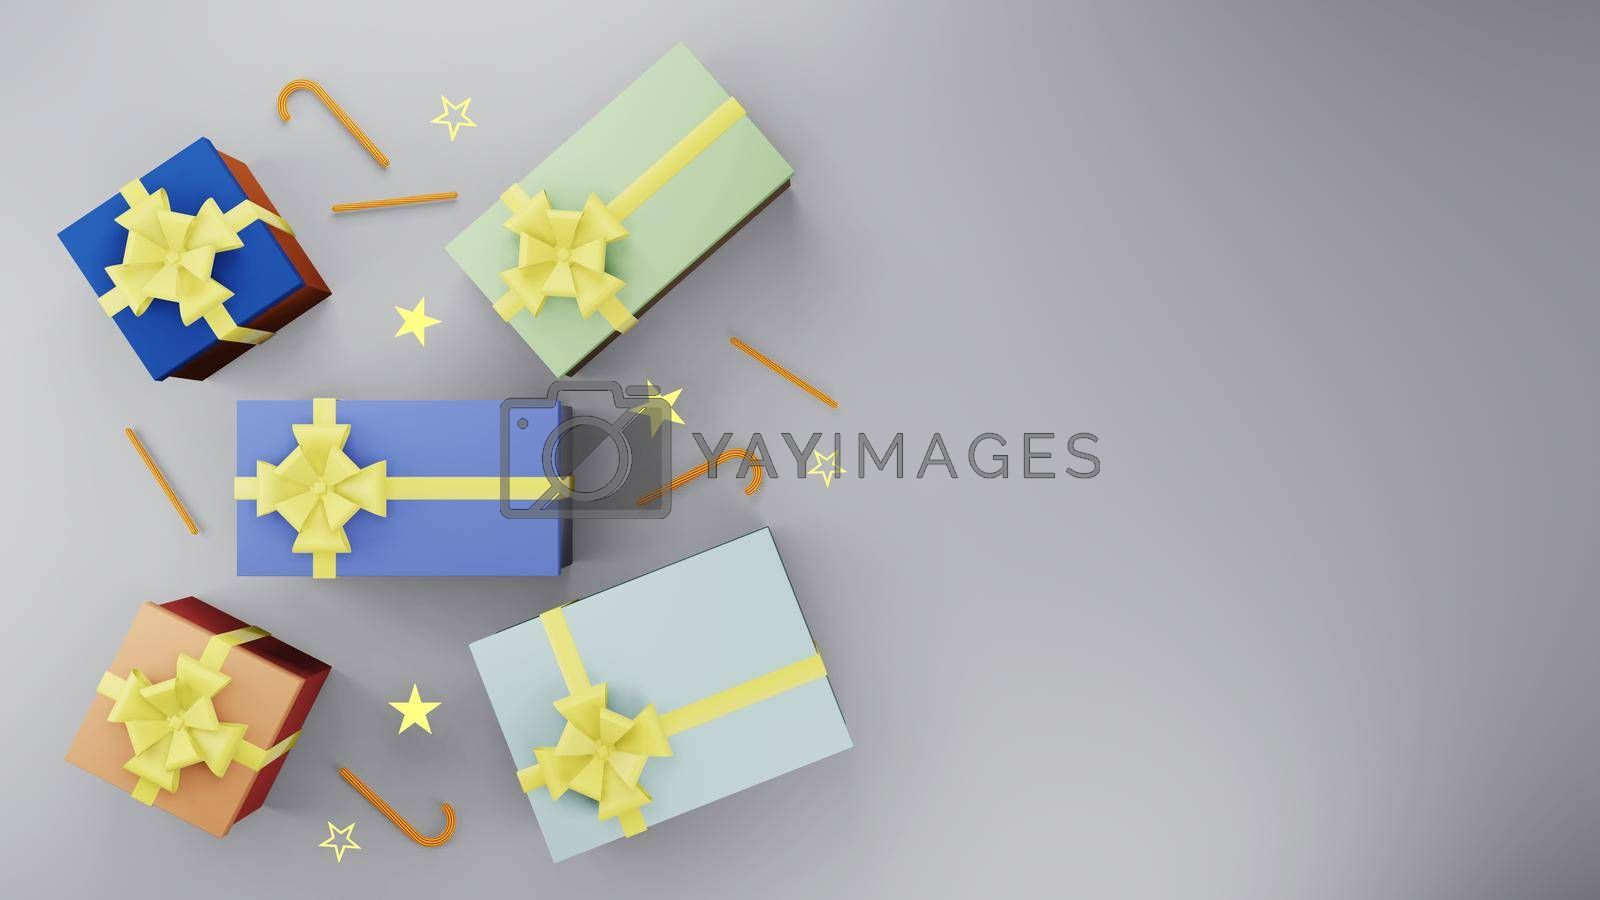 Royalty free image of Colorful gift box with golden ribbon and gold star by eaglesky